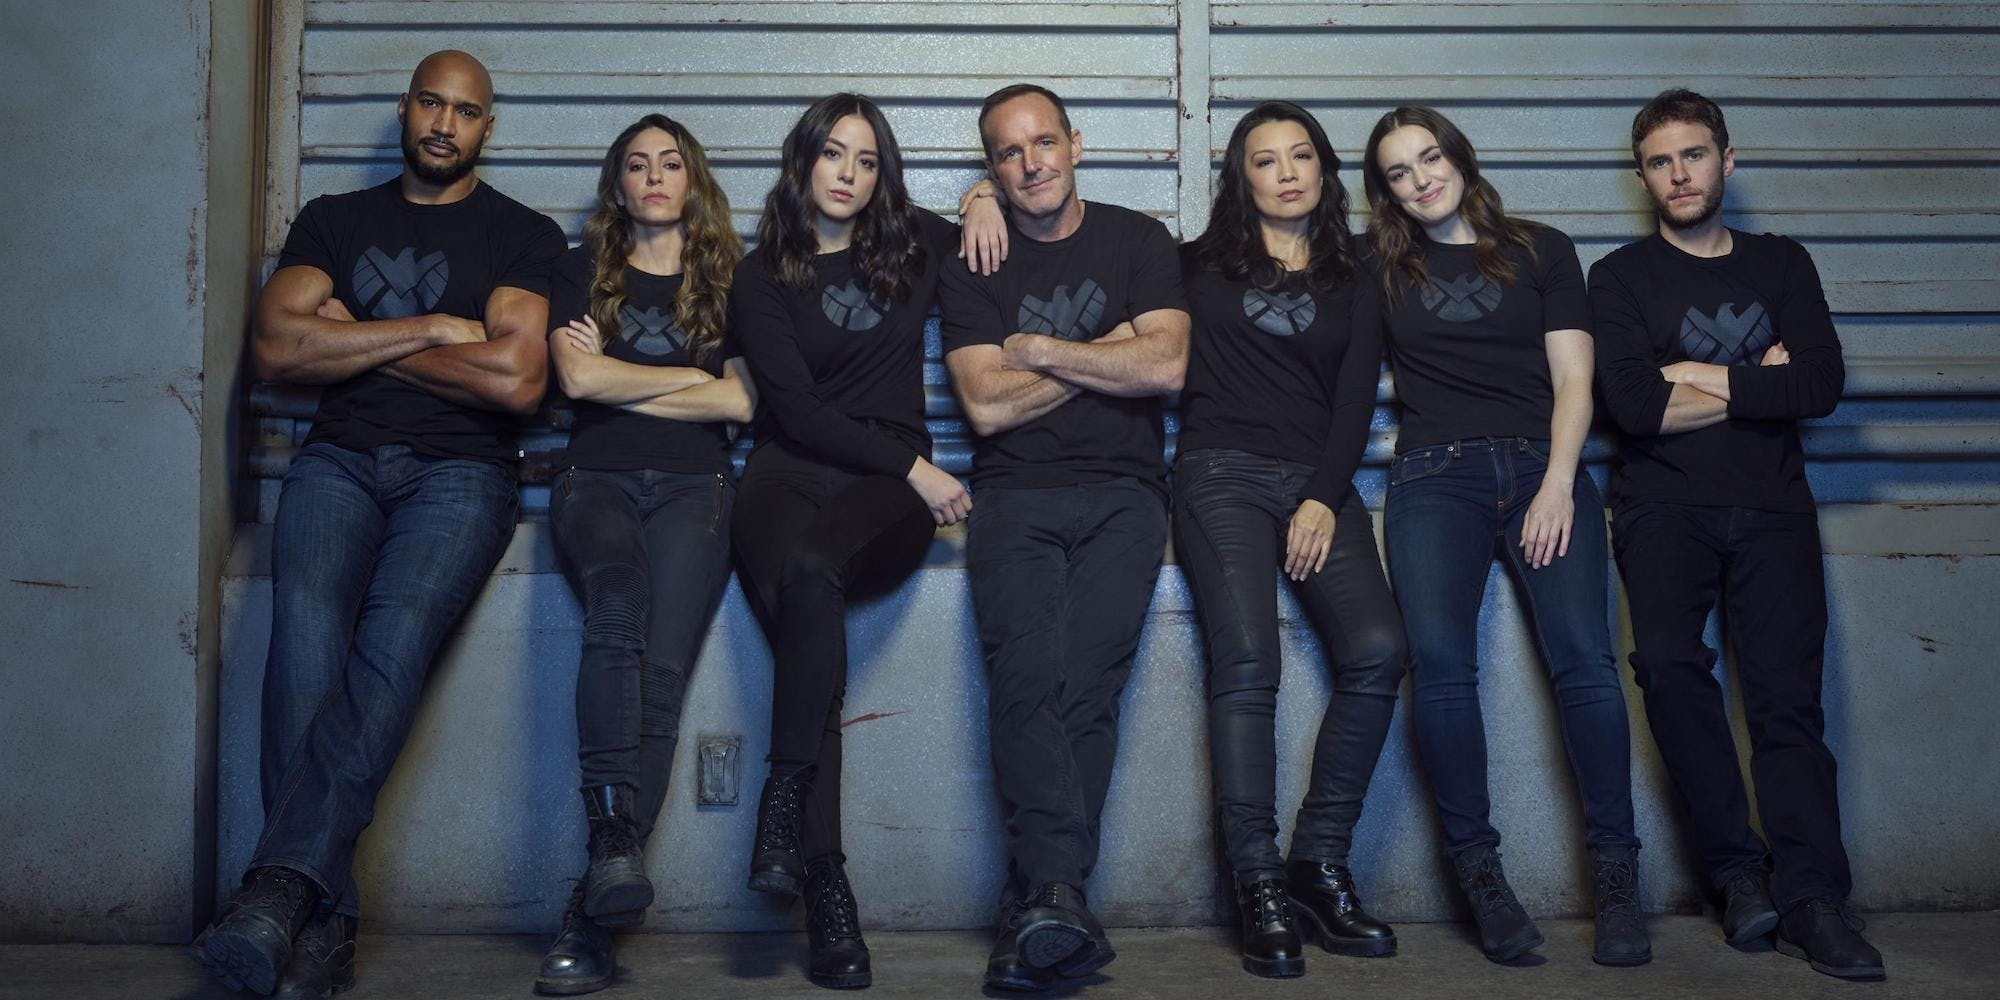 Agents of Shield Agents of Shield